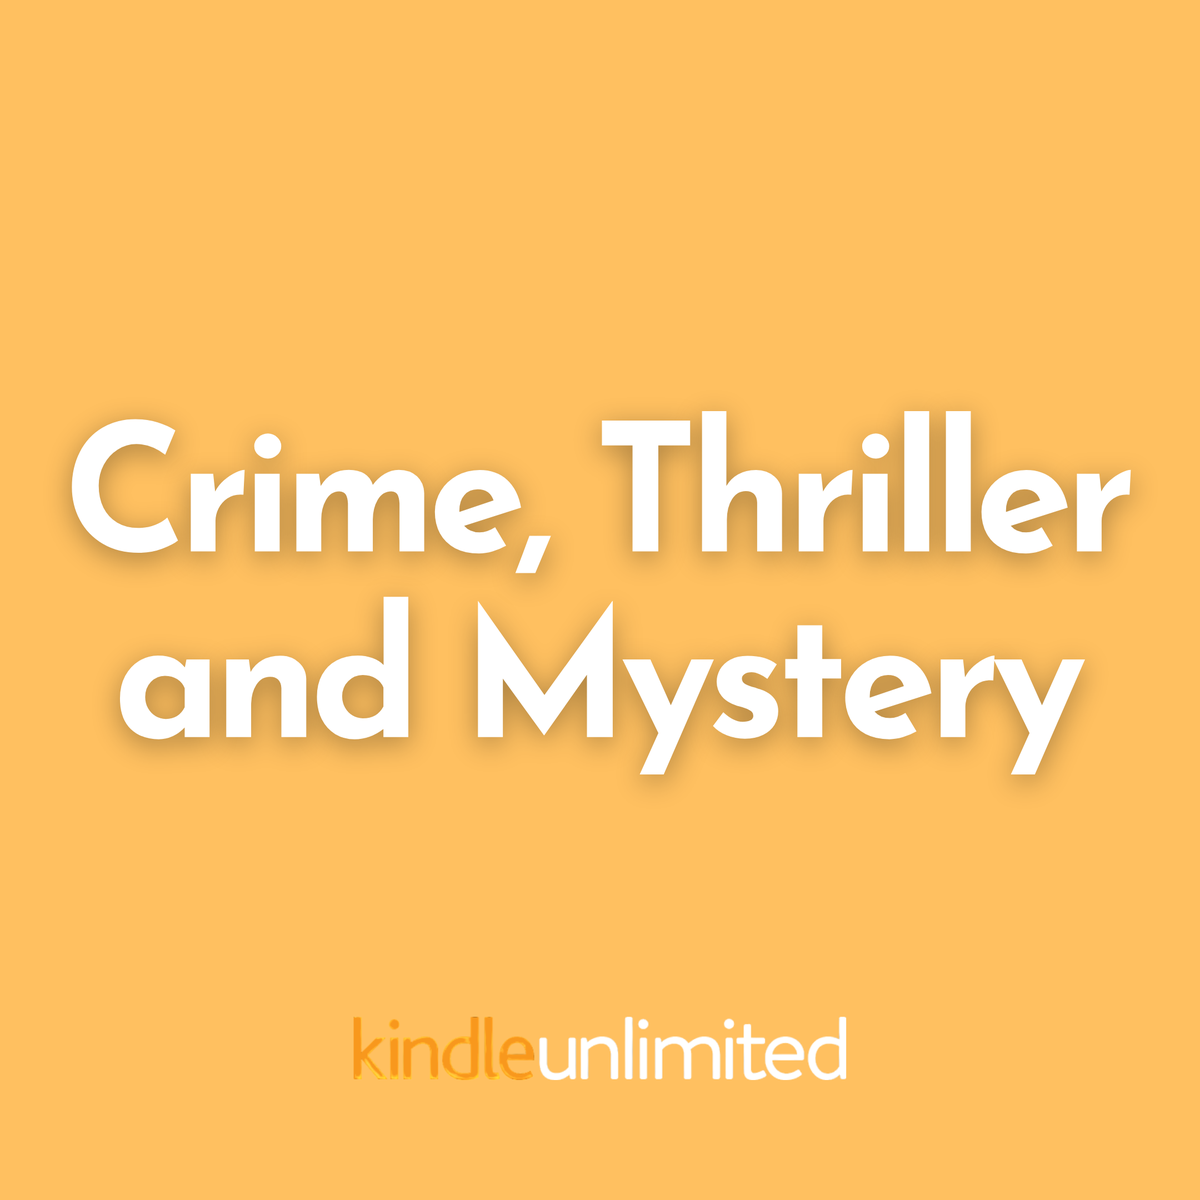 Crime, Thriller and Mystery